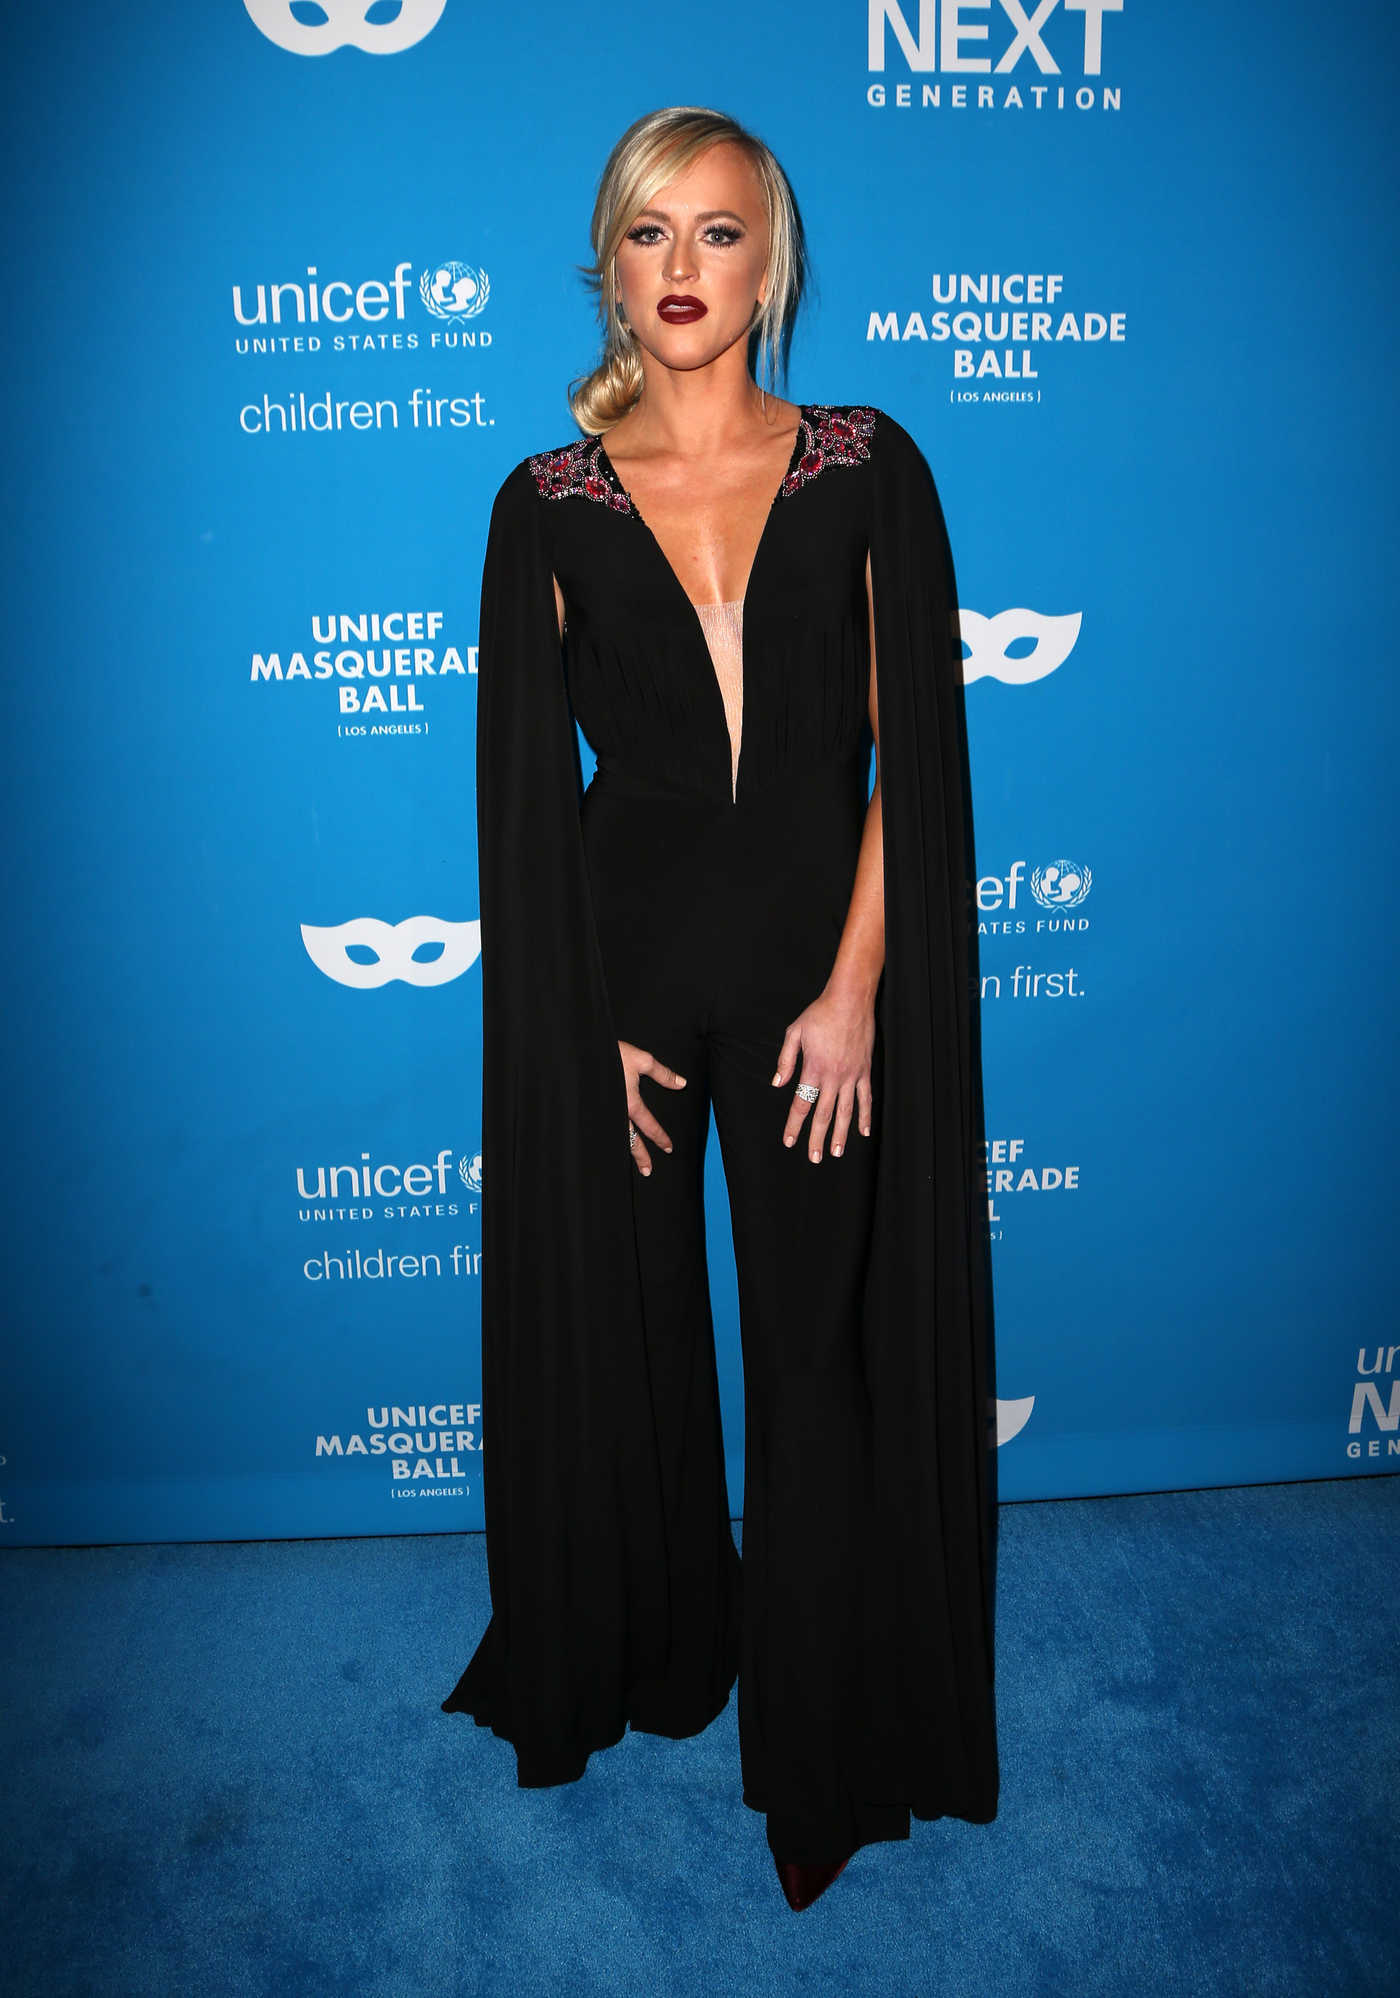 Danielle Moinet at the 2016 UNICEF Masquerade Ball in Los Angeles 10/27/2016